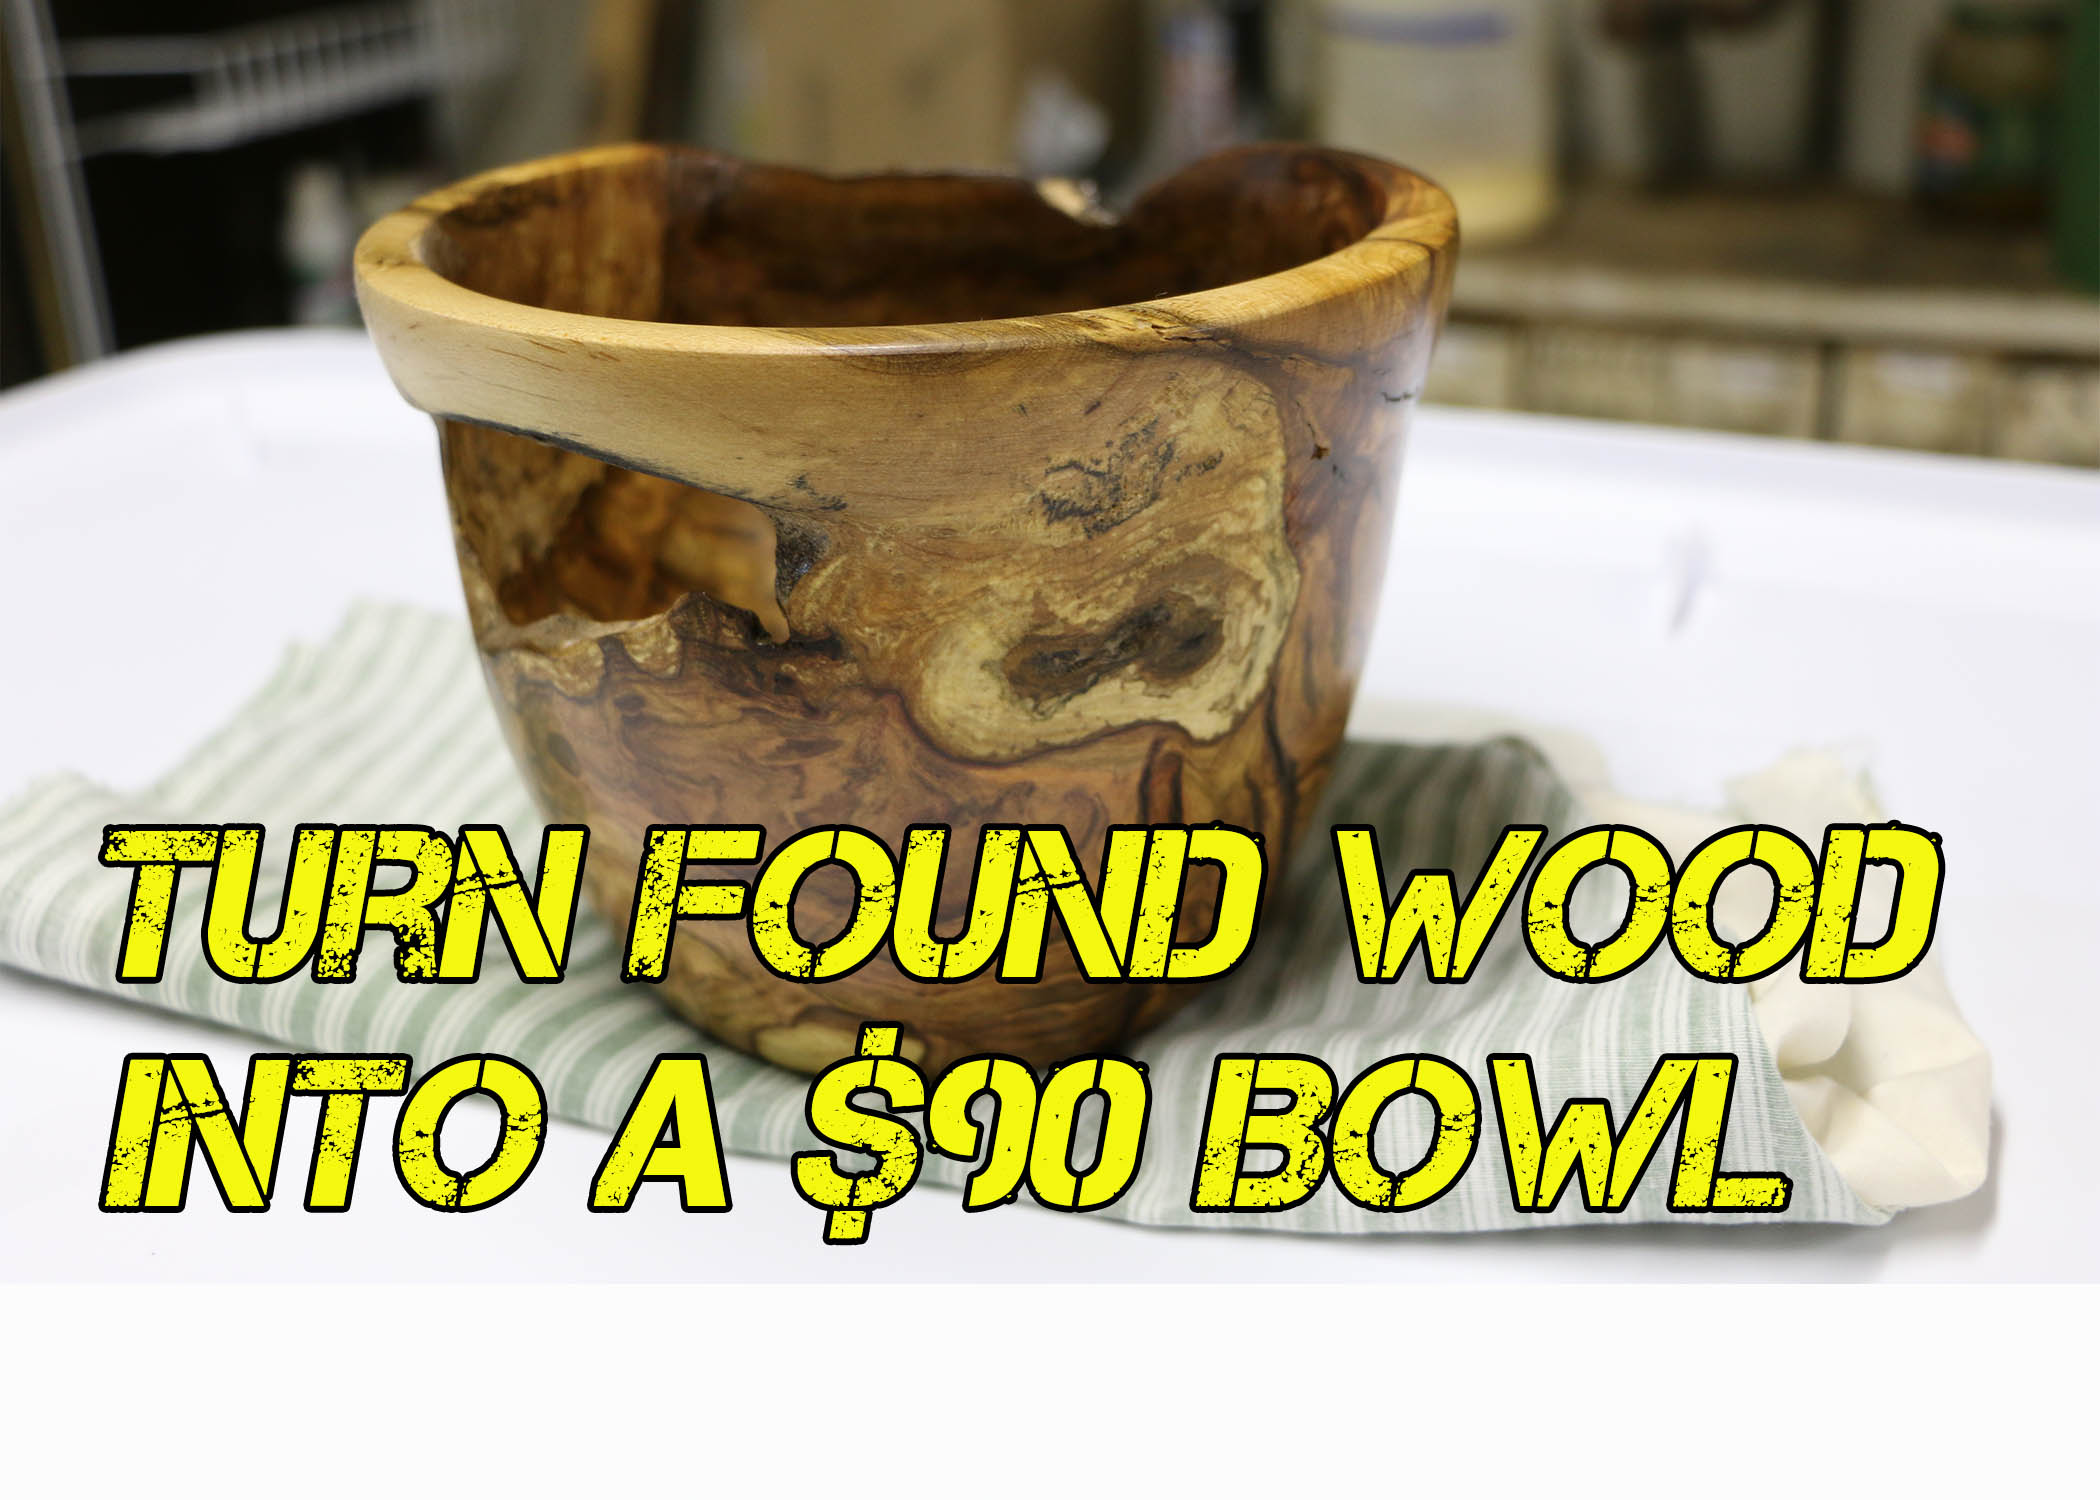 $90 wooden bowl made from firewood